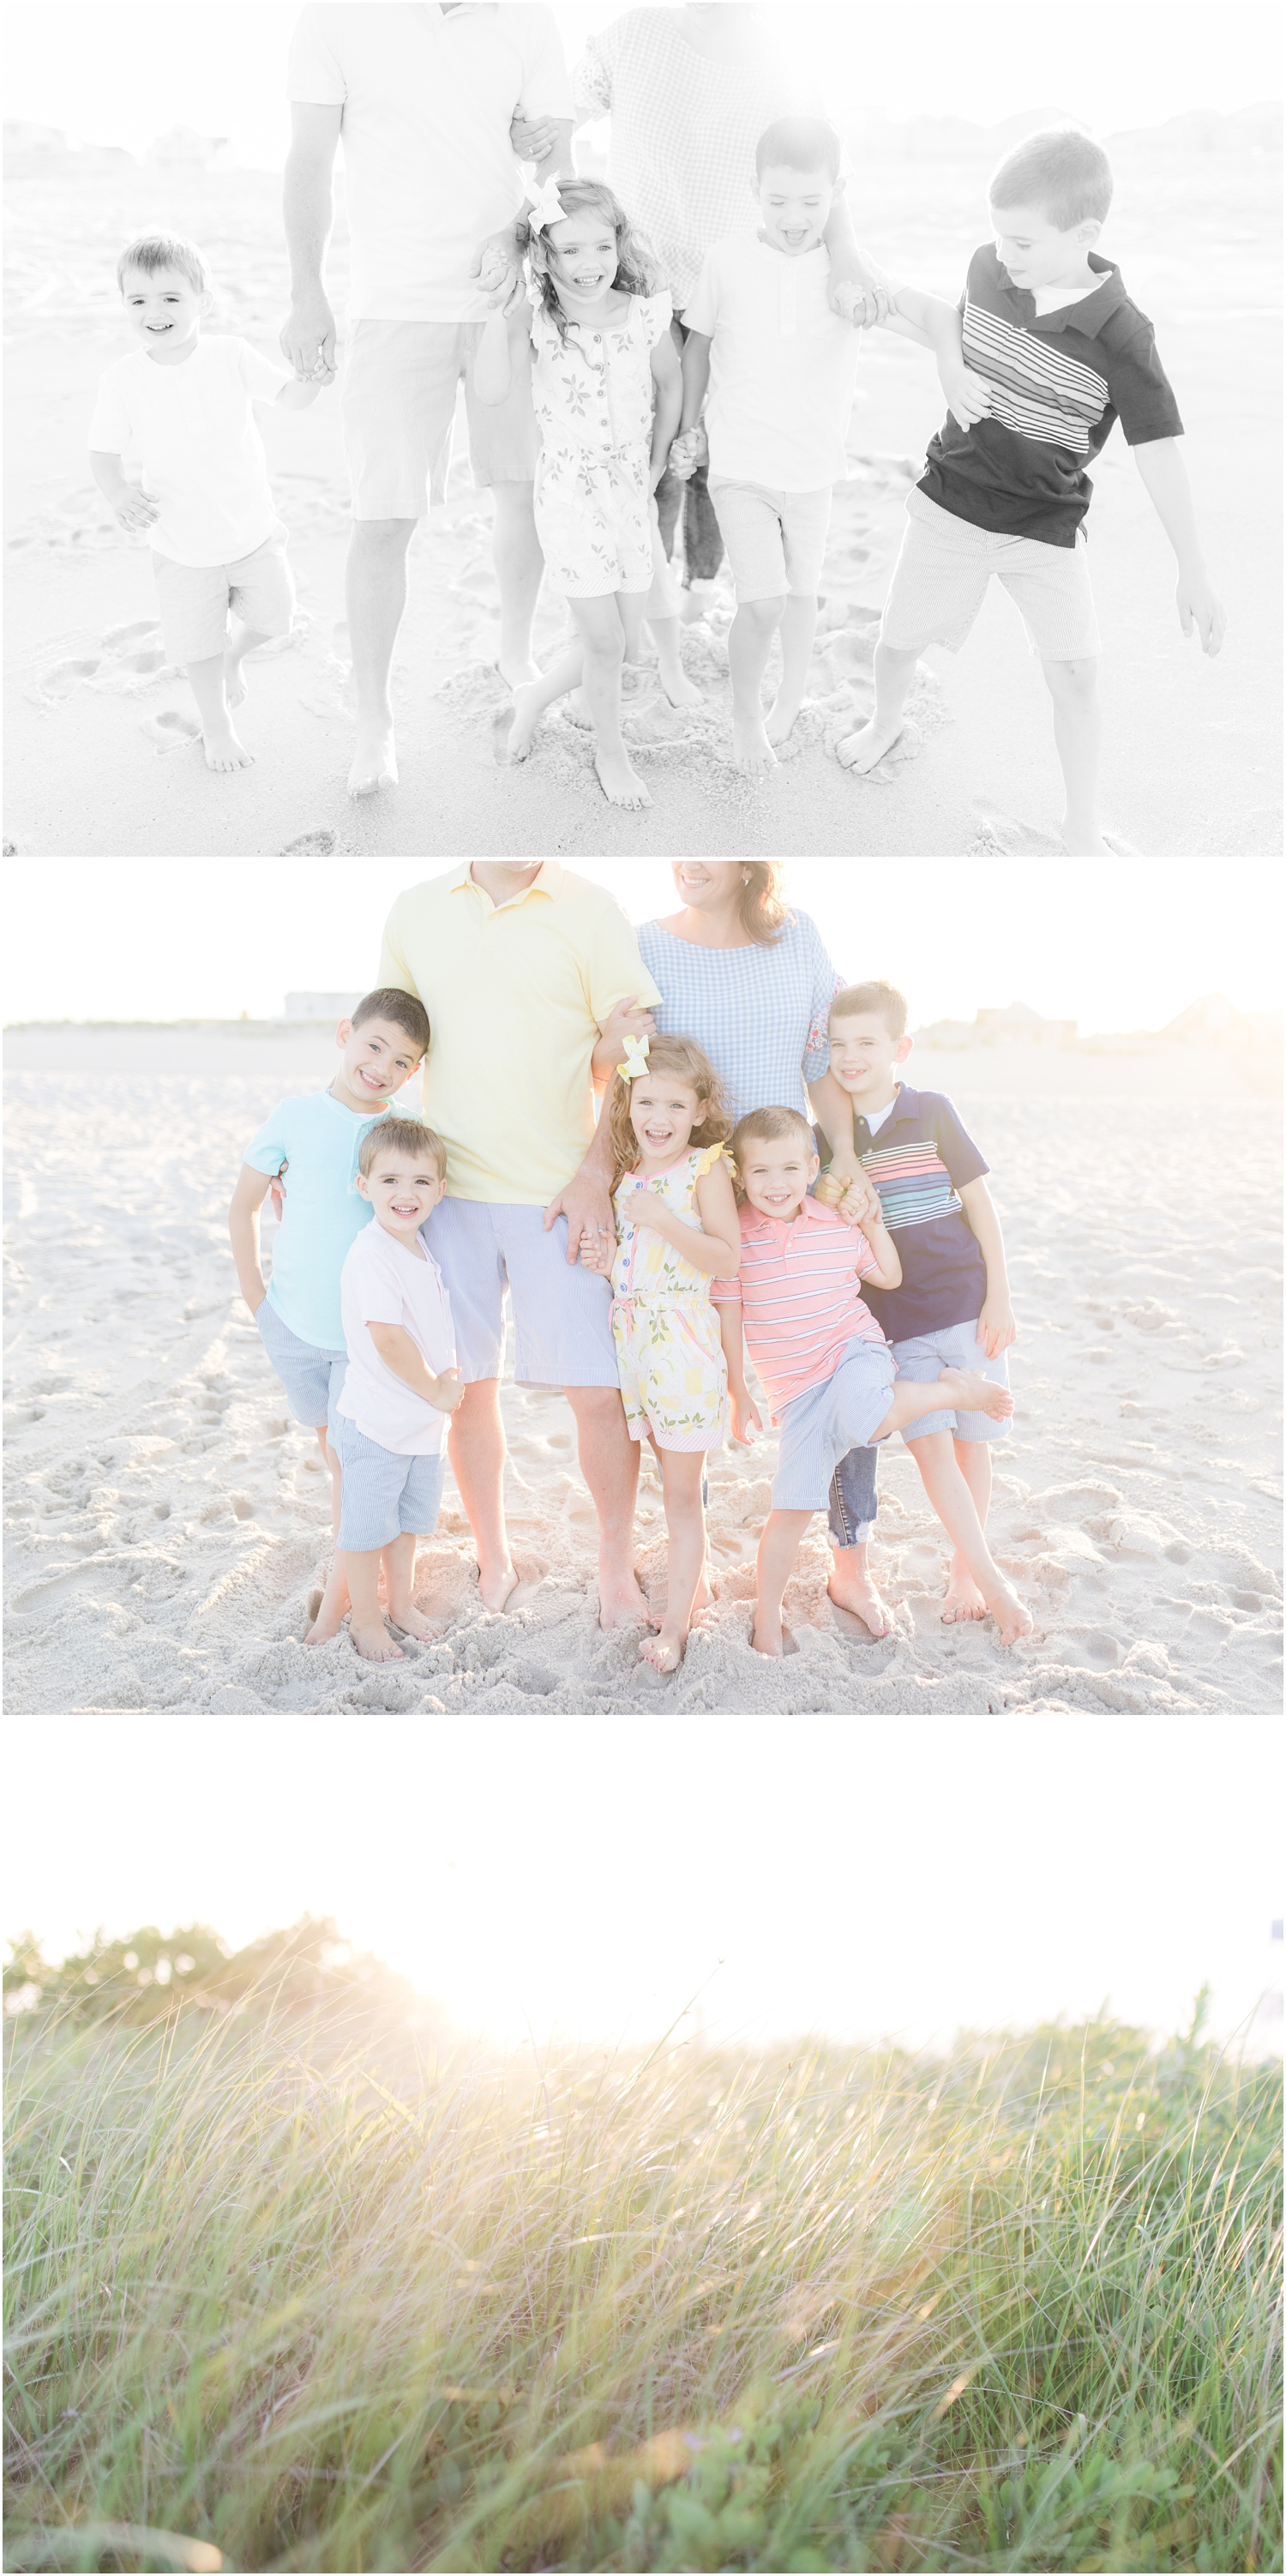 Sunny photos of a family by the ocean in Lavallette.